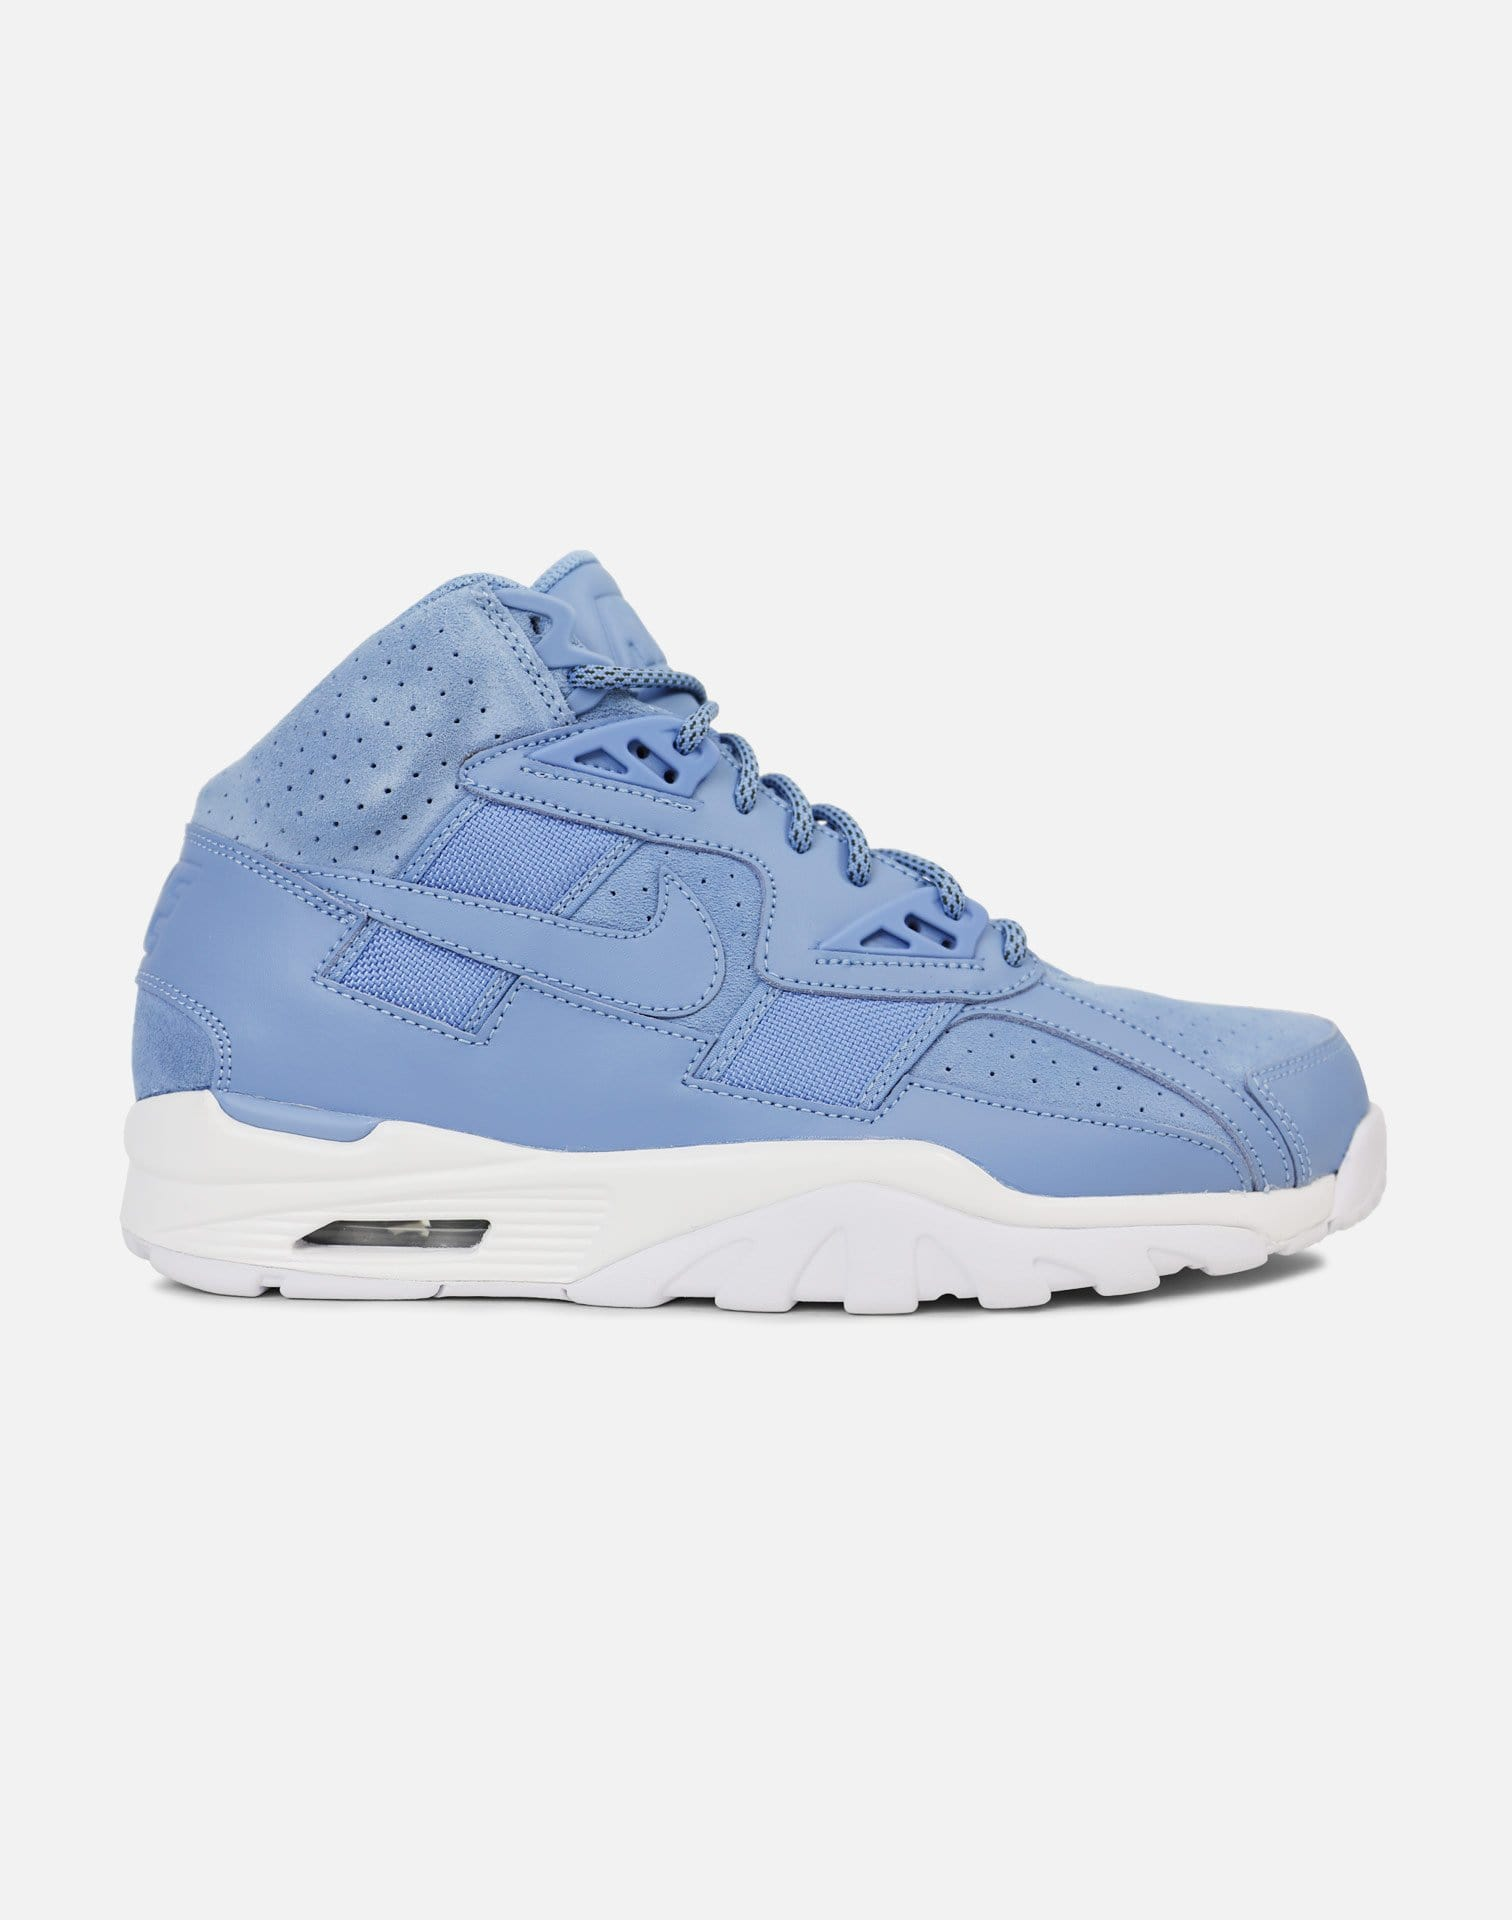 Nike Air Trainer SC High (University Blue/White)